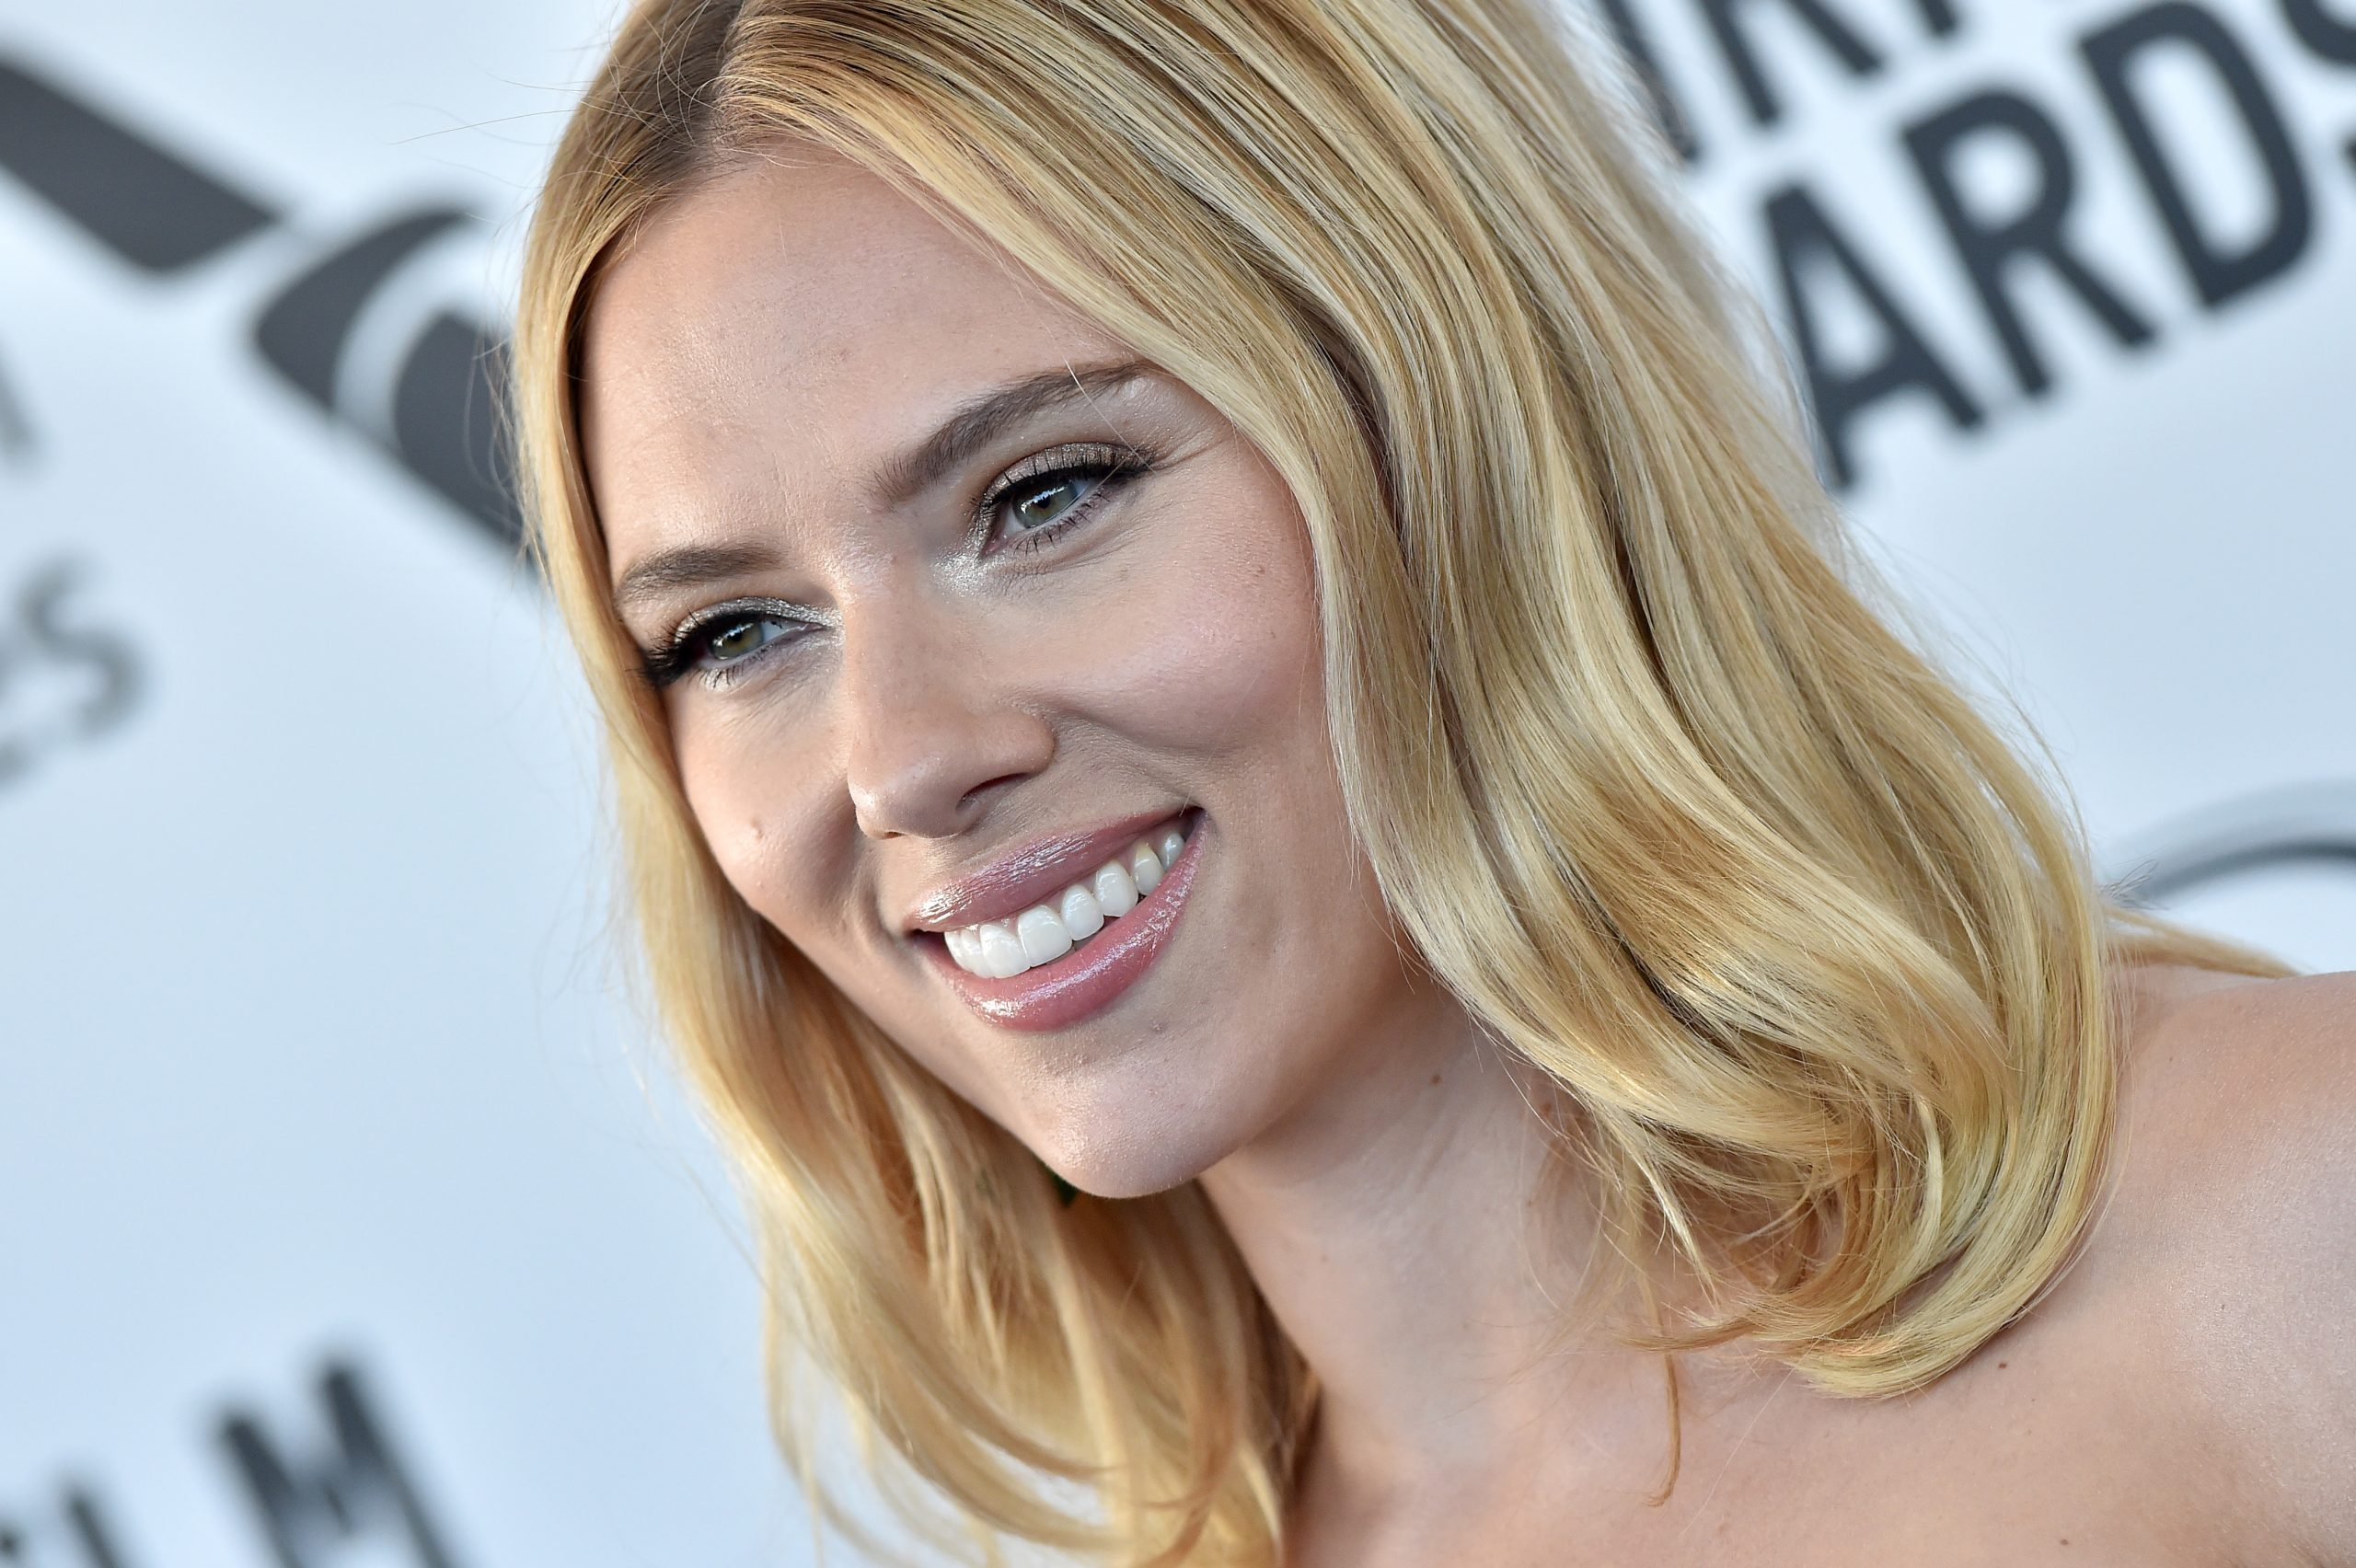 Why Mcu Star Scarlett Johansson Took Aim At The Media After Signing On For Iron Man 2